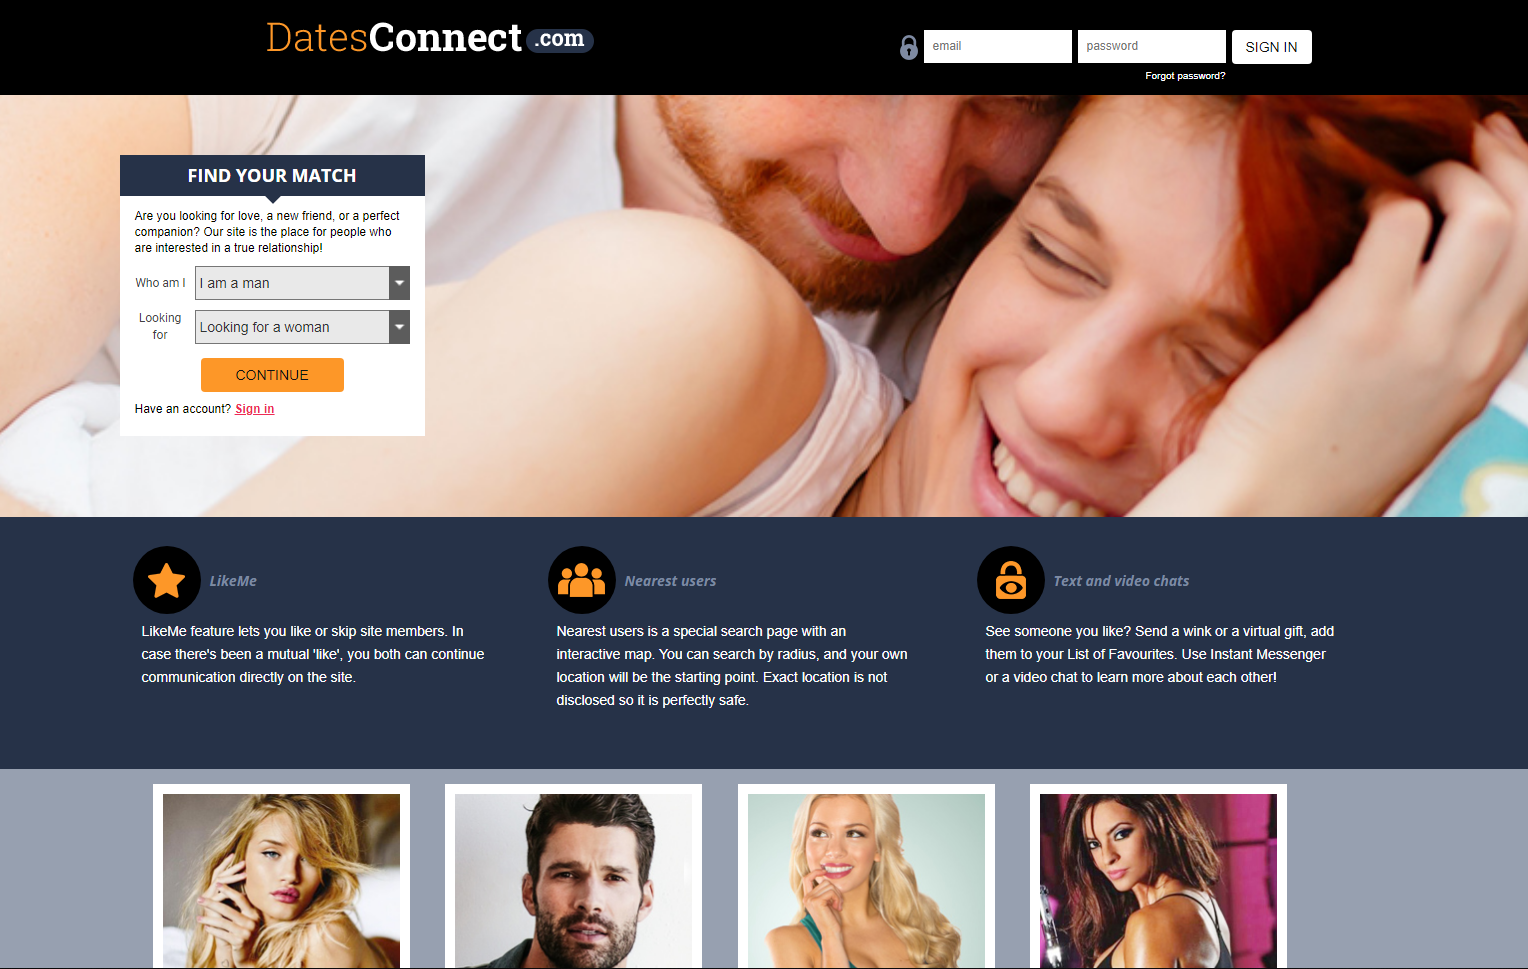 Datesconnect.com website